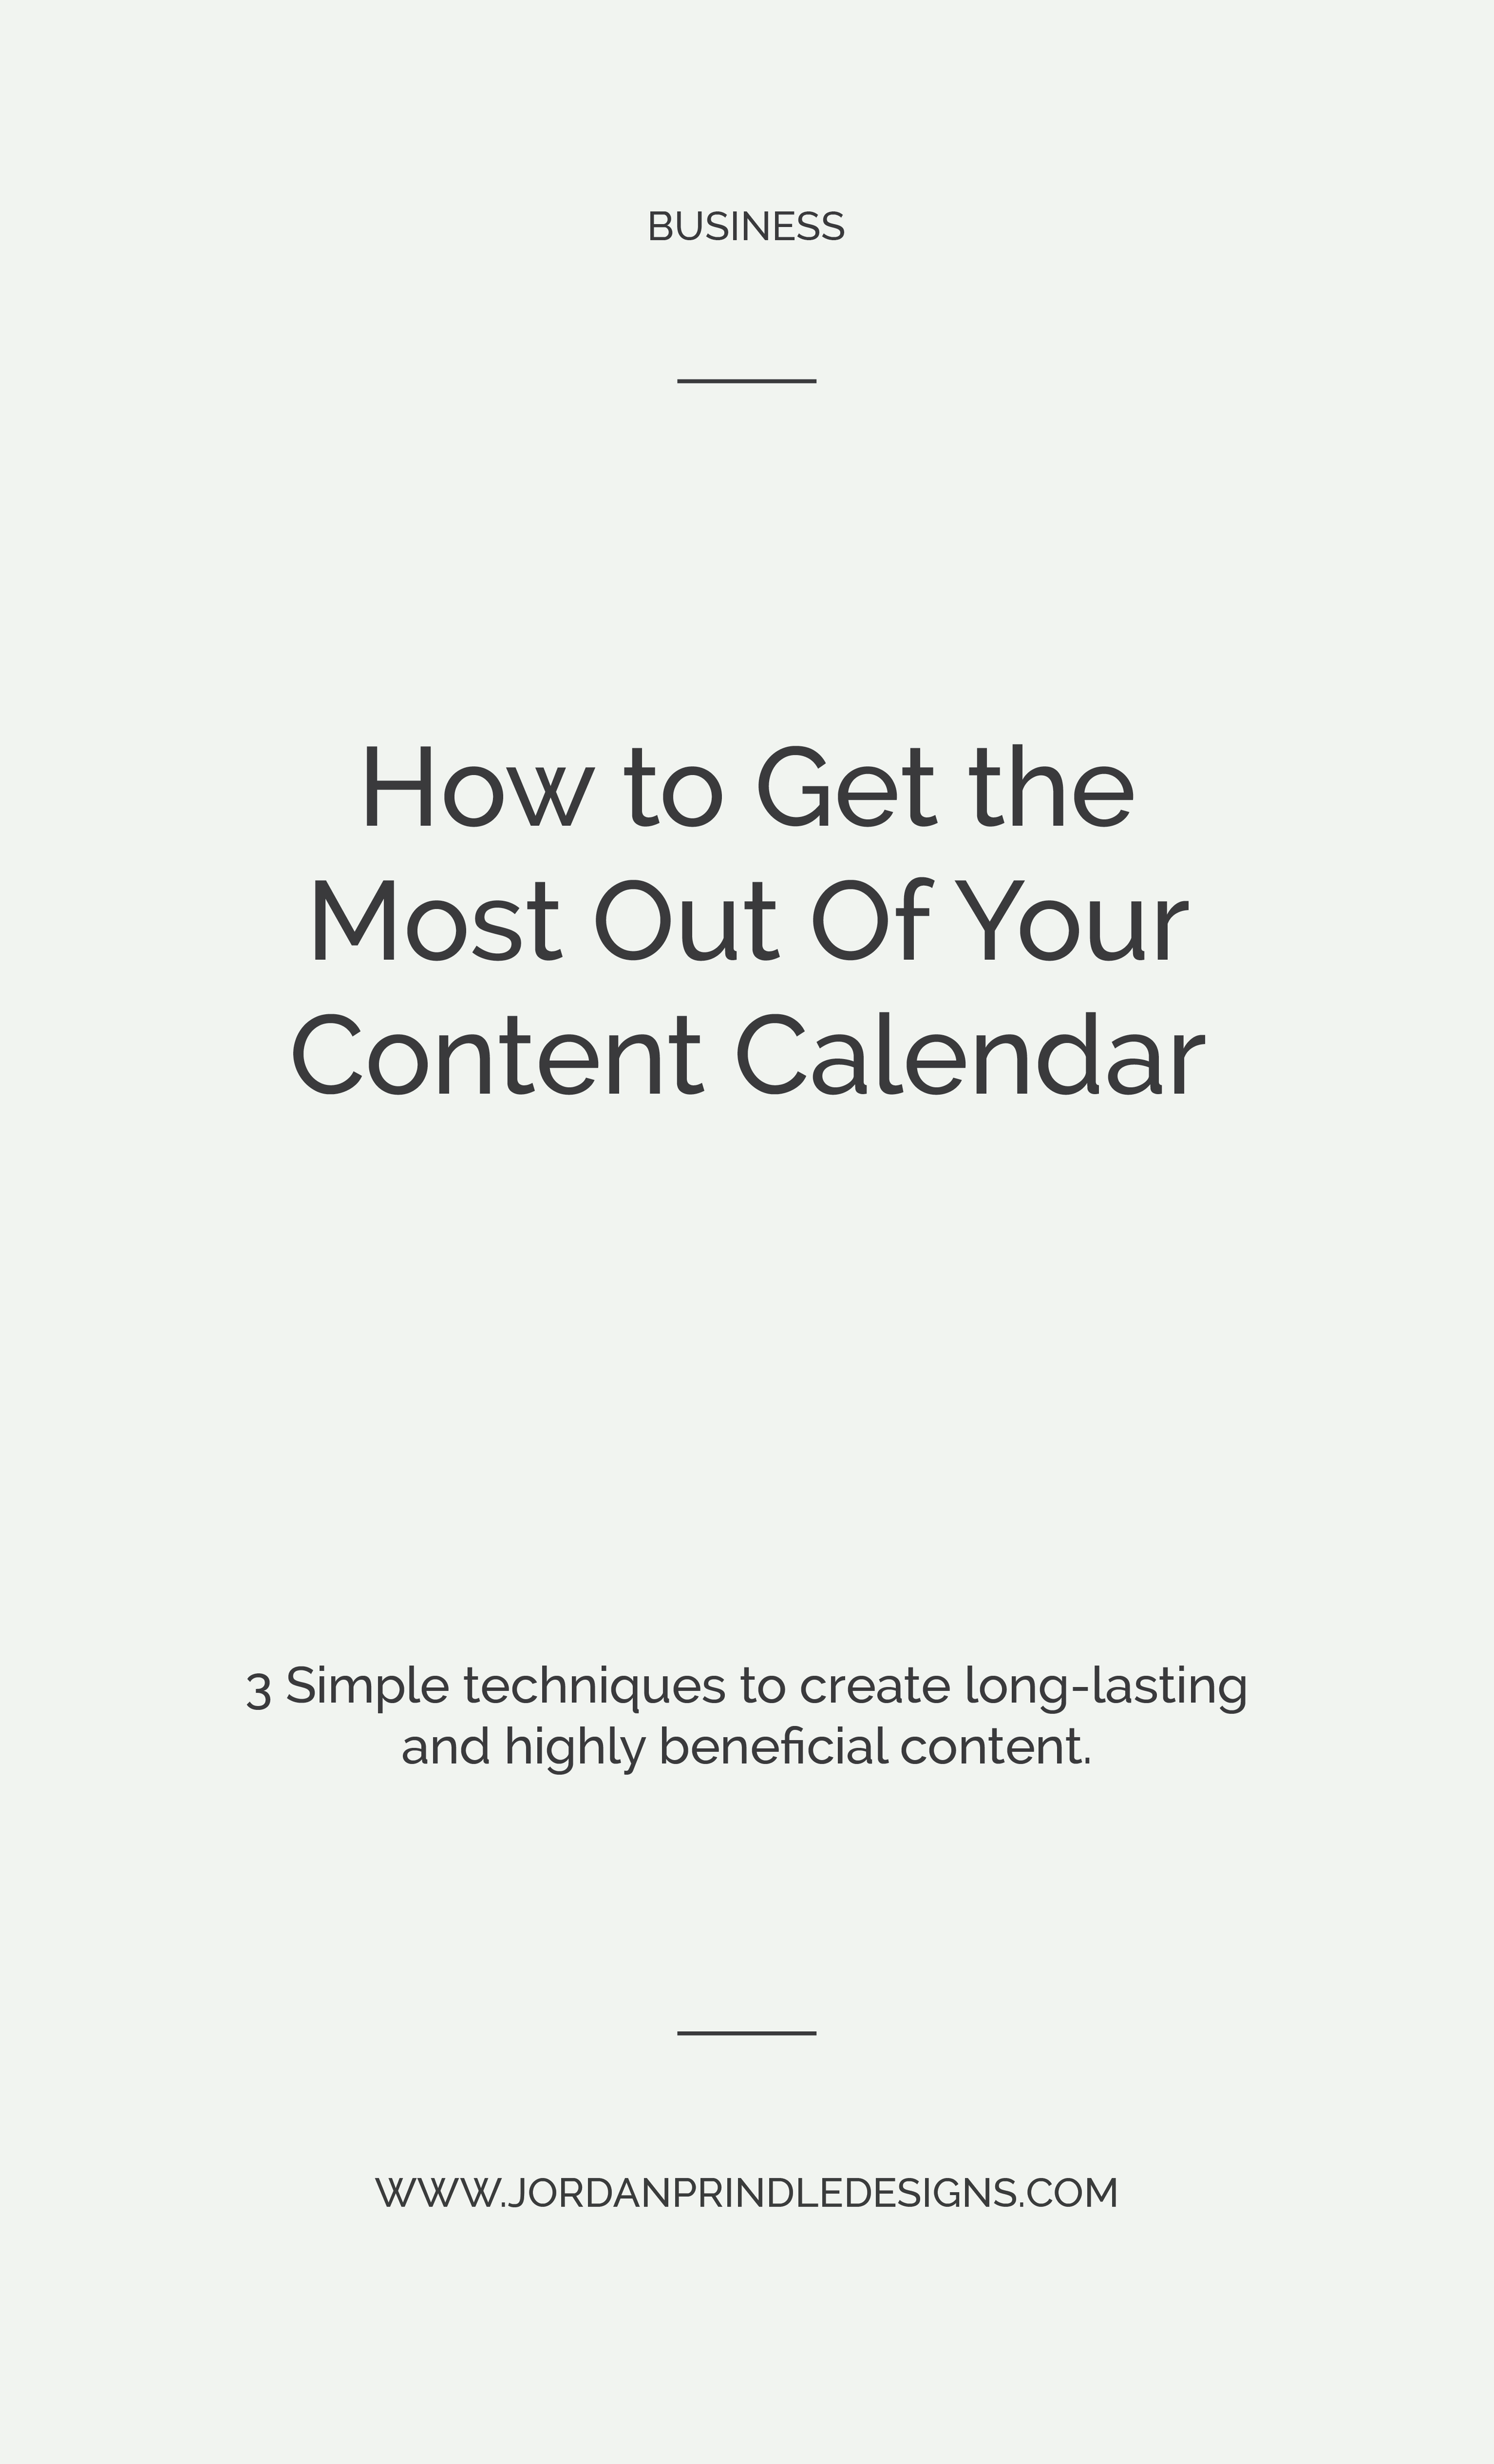 How to Get the Most Out Of Your Content Calendar   Blogging and content marketing are vital to any small business owner. In this recent post, I'm sharing how you can blog successfully with ease. Keep reading: www.jordanprindledesigns.com #blogging #smallbusiness #contentmarketing